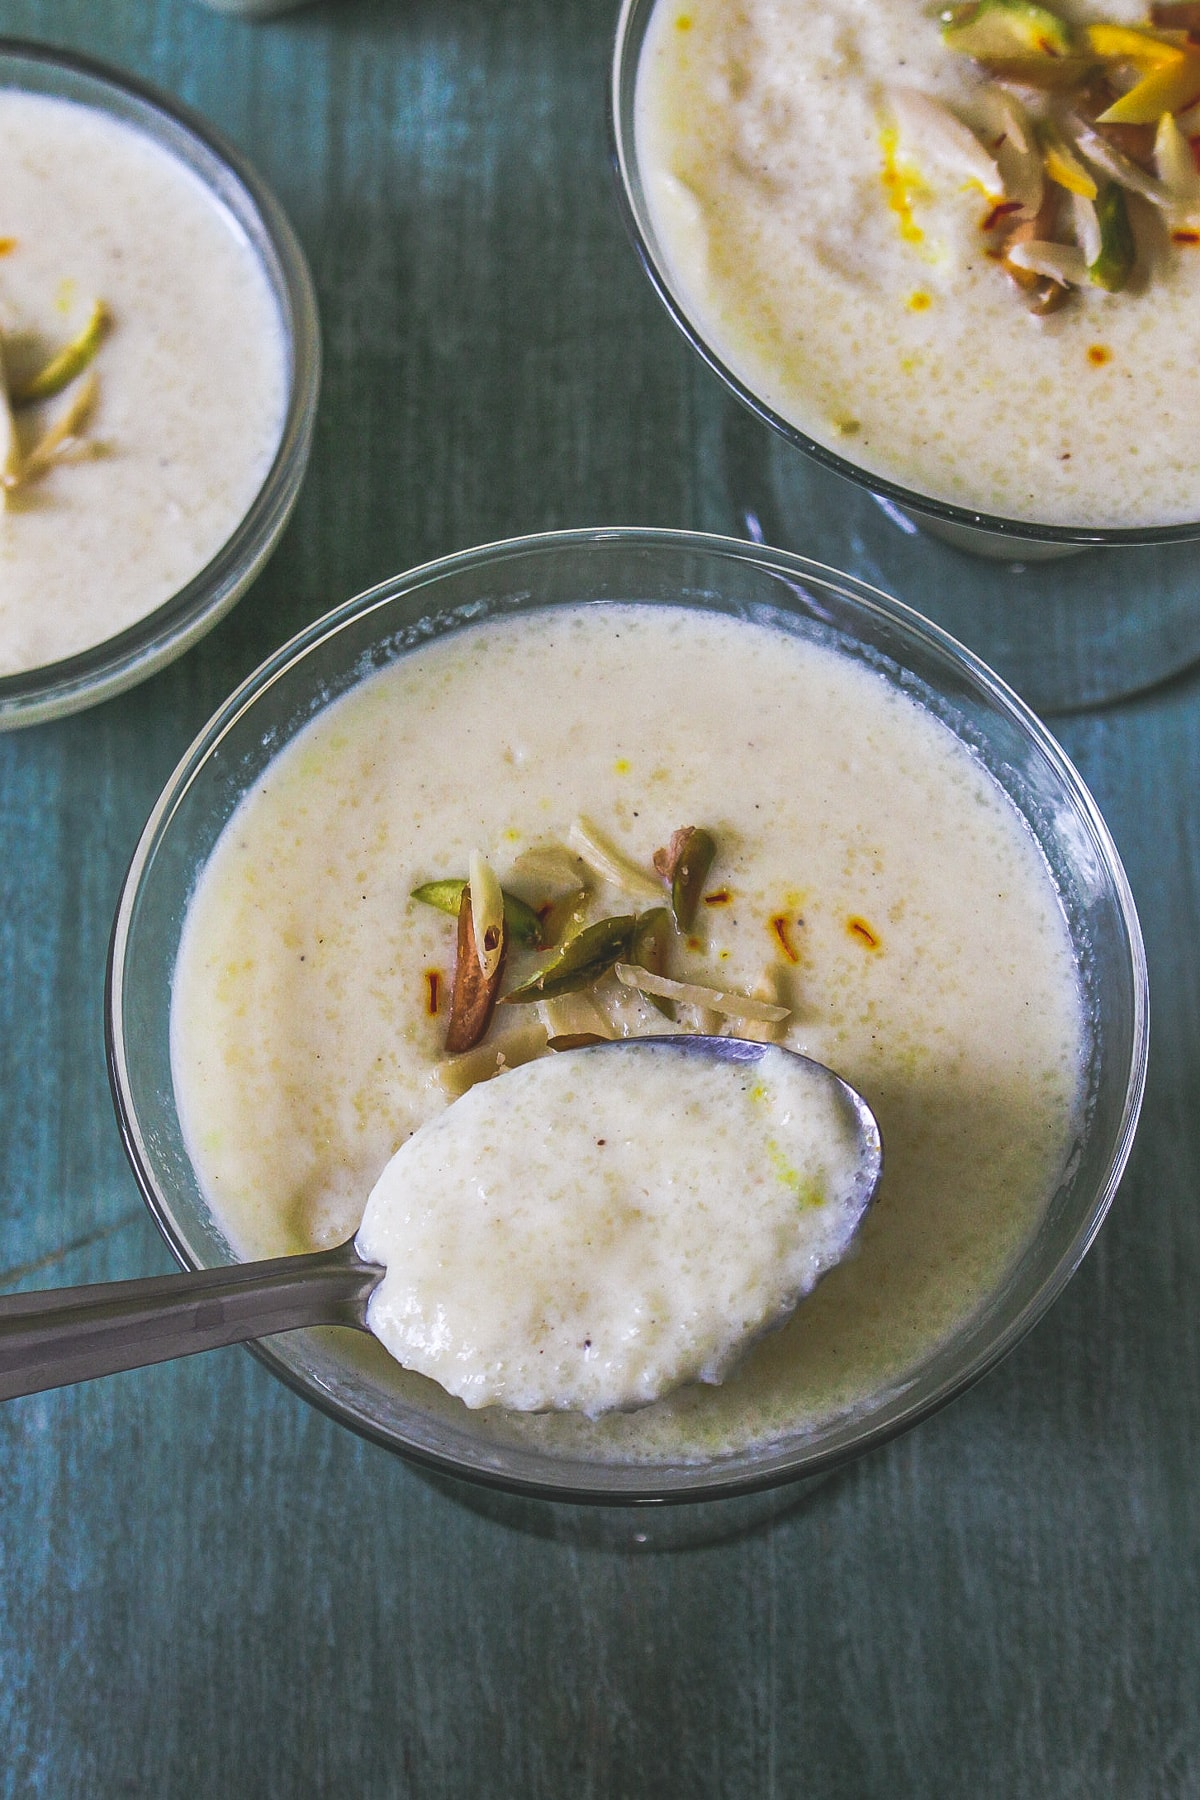 phirni served in 3 individual bowls and a spoonful of taken from one bowl, ready to eat